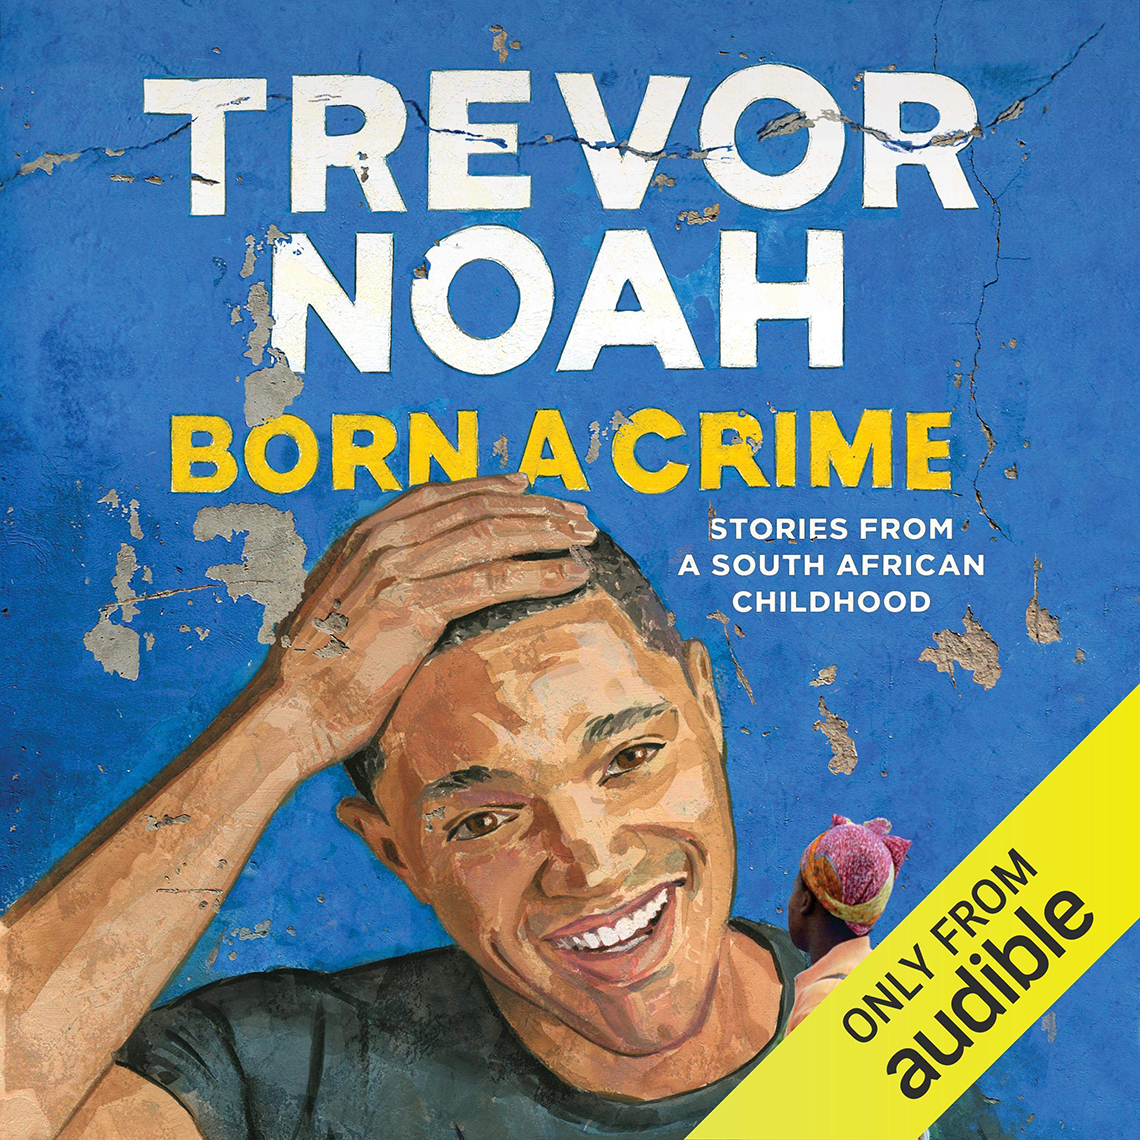 born a crime stories from a south african childhood by trevor noah